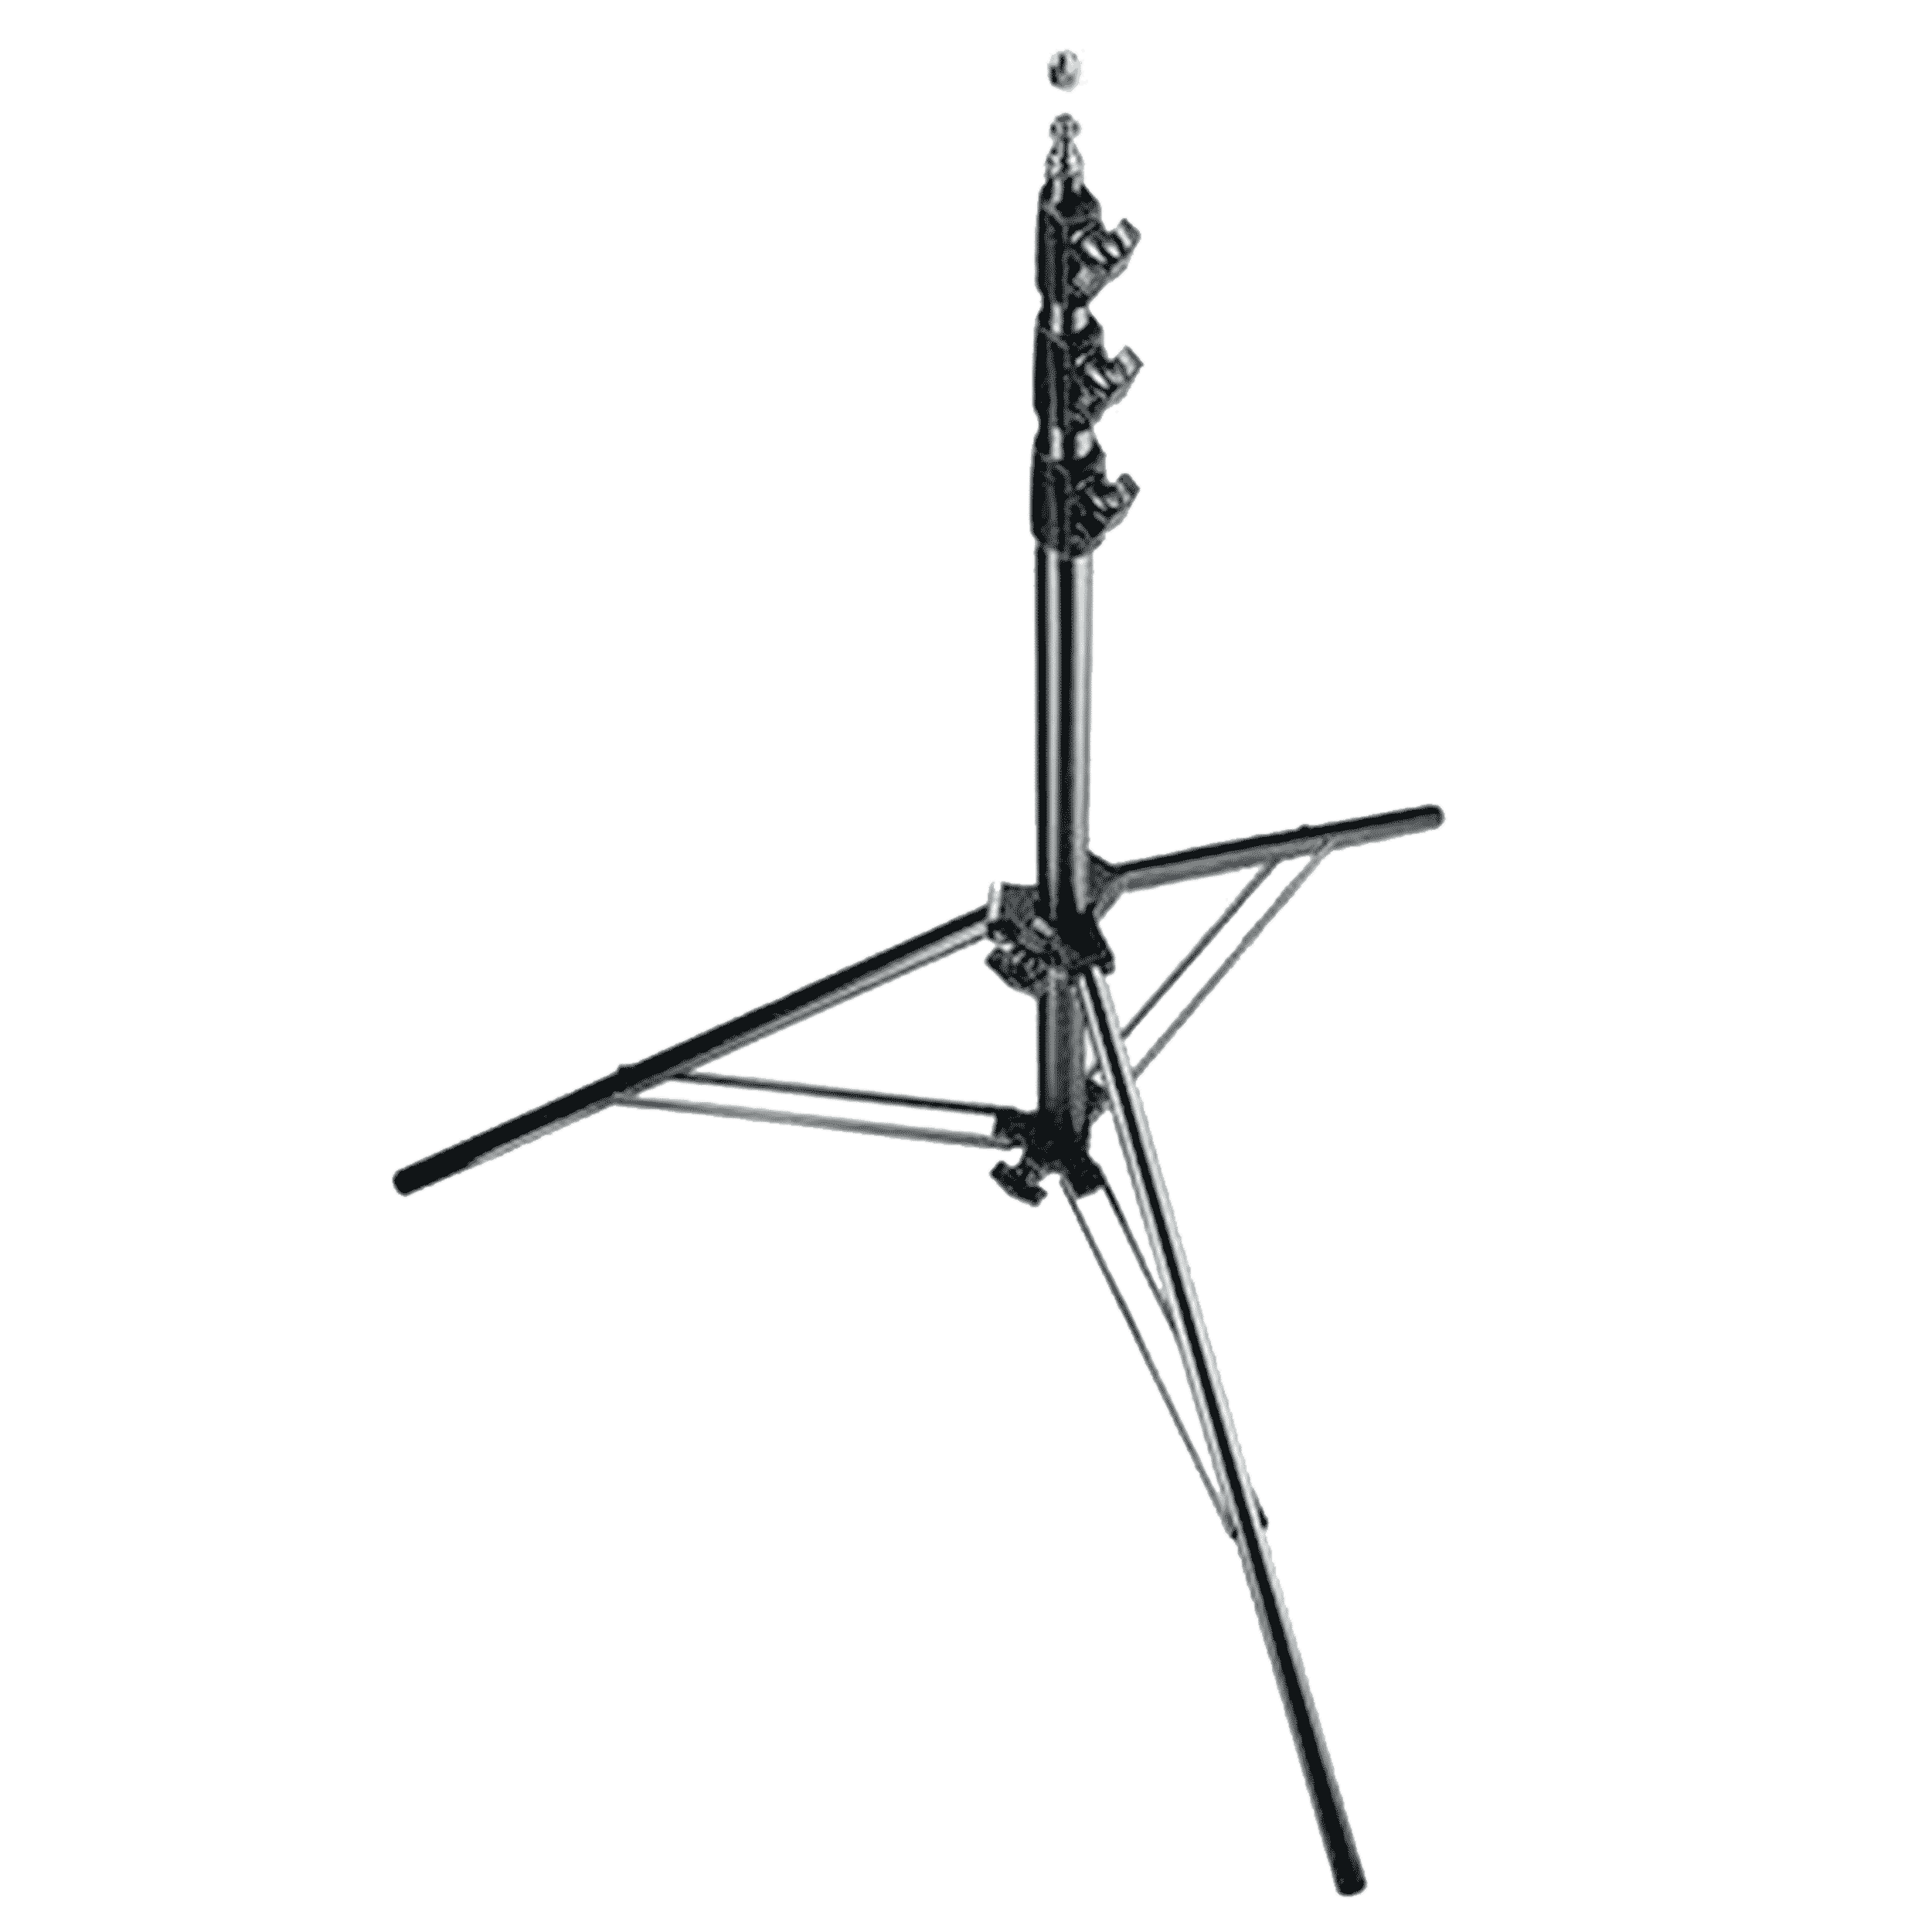 manfrotto_master_light_stand.png